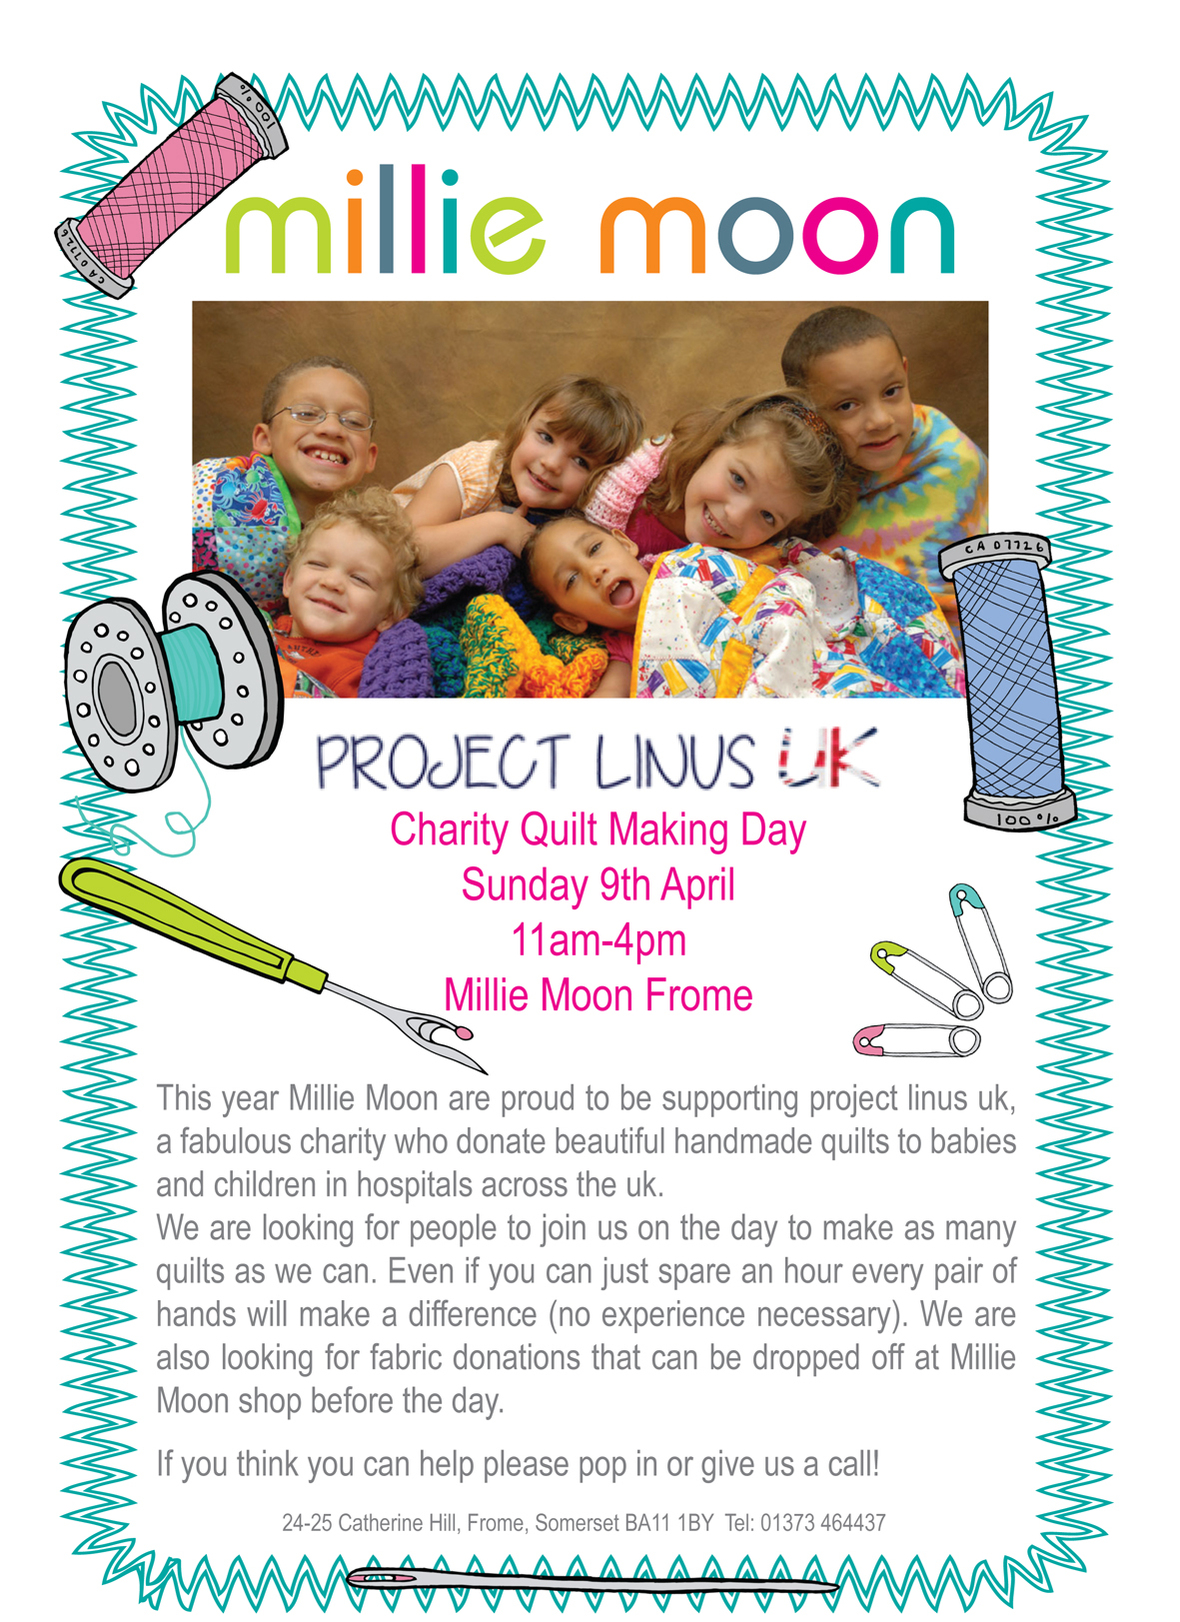 project linus poster 2017